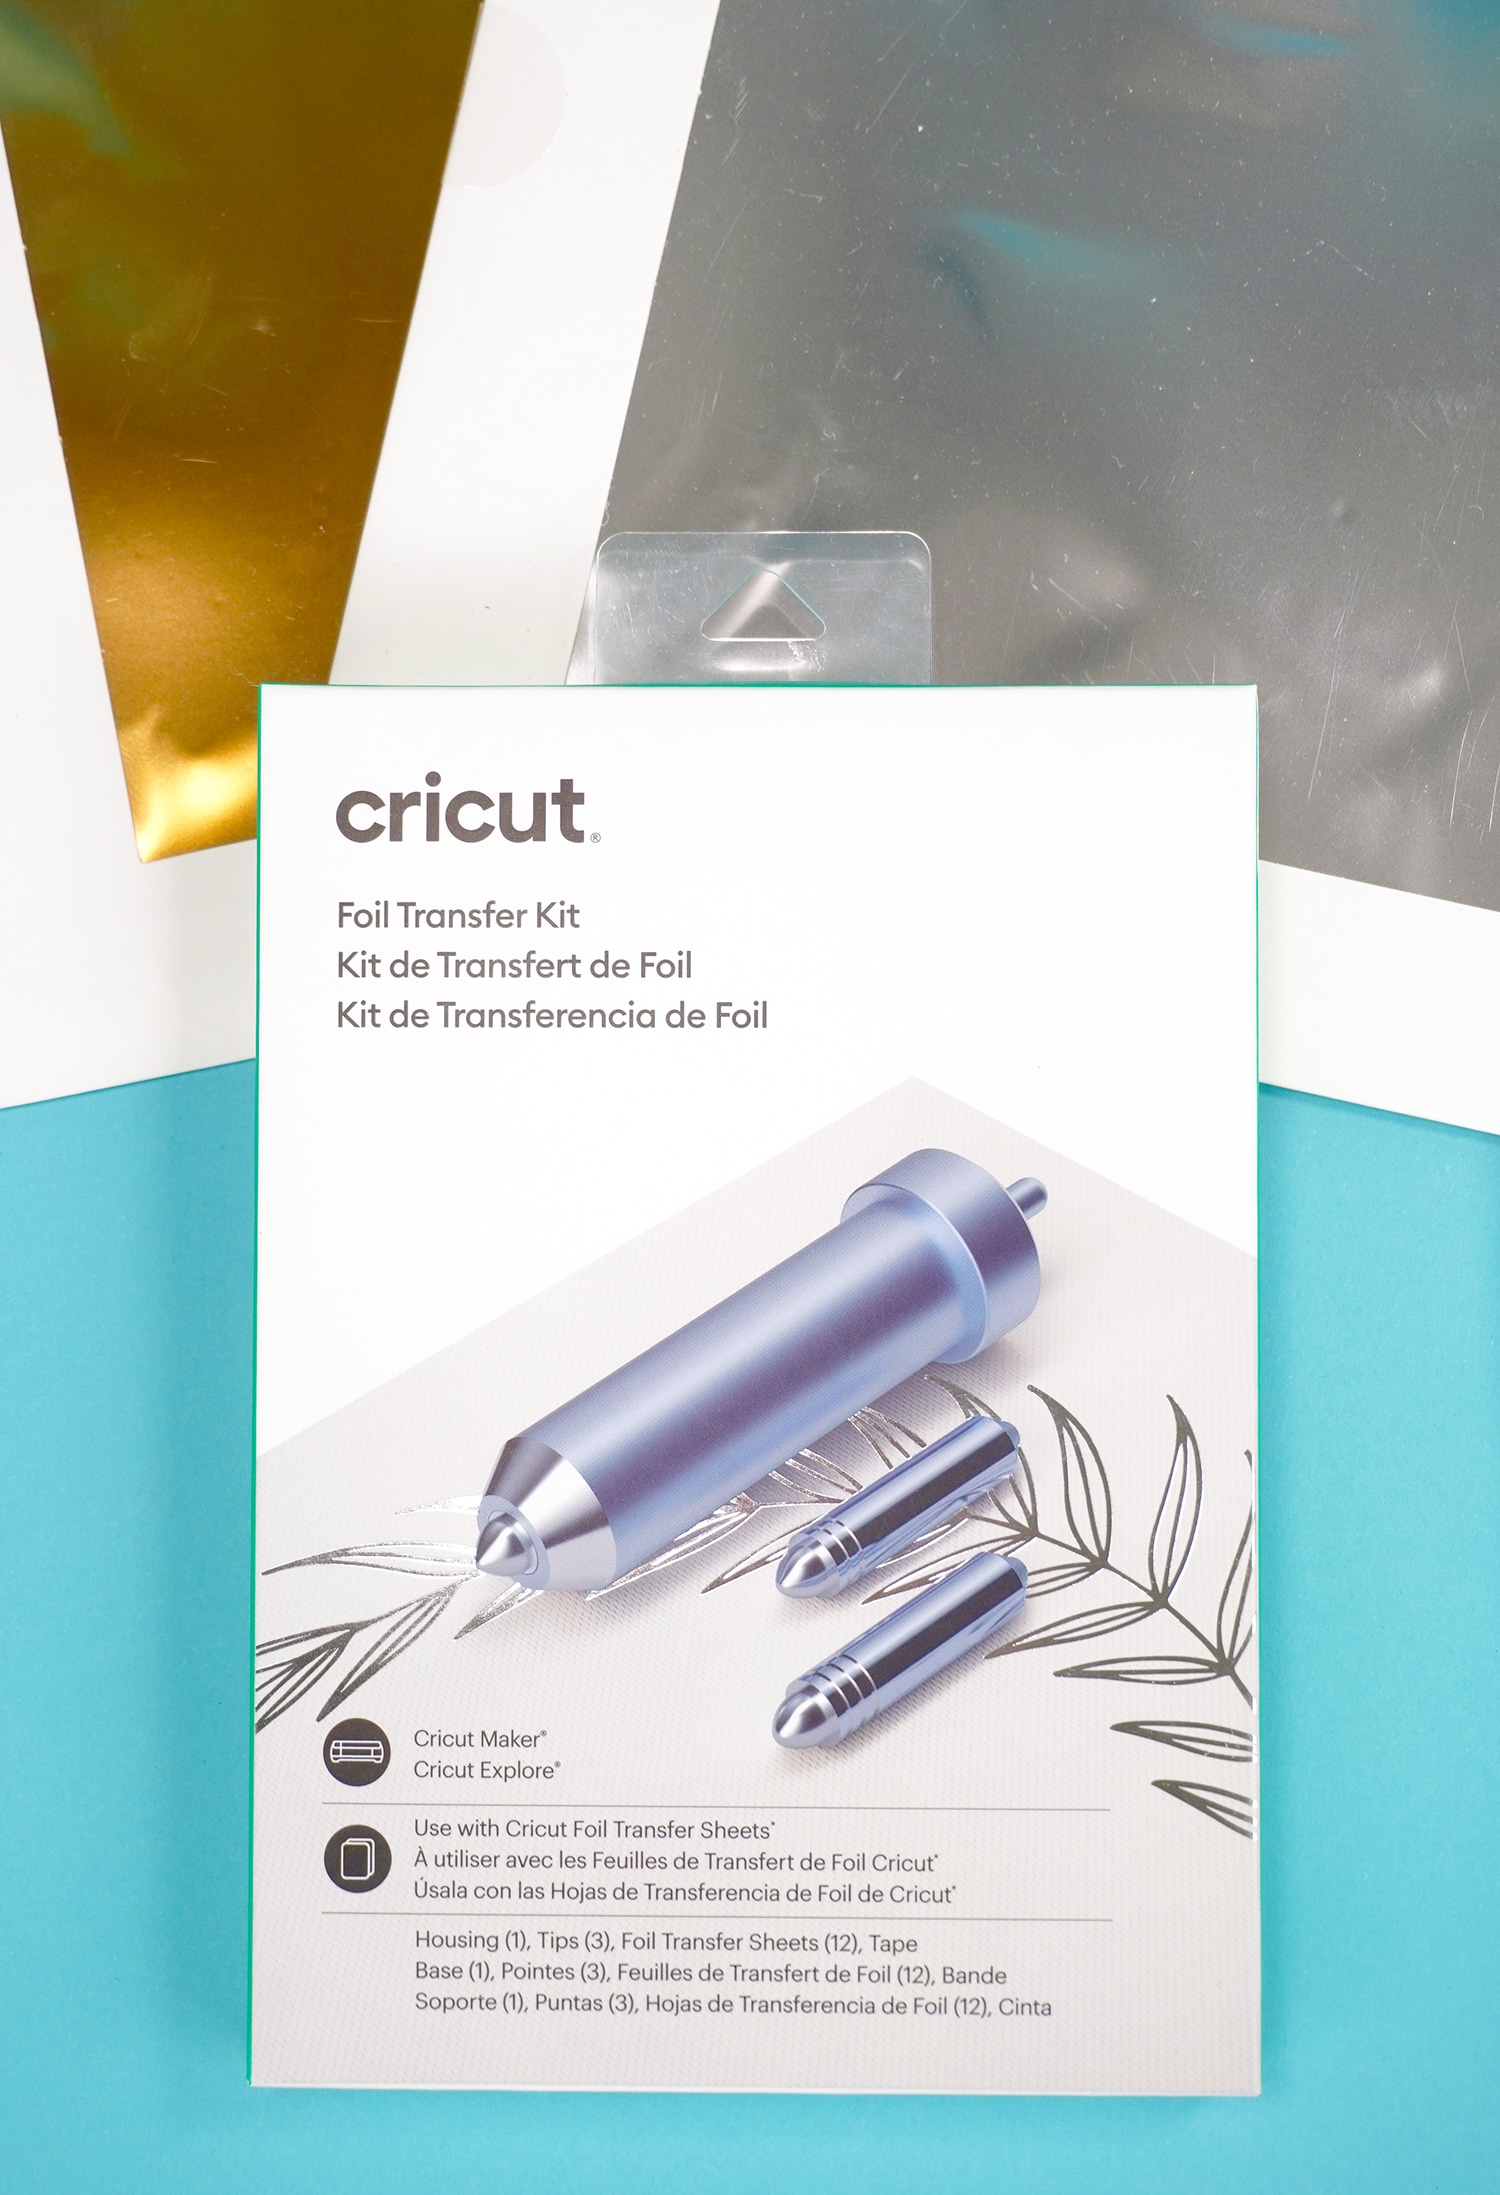 Cricut Foil Transfer Kit packaging and gold and silver foil on blue background